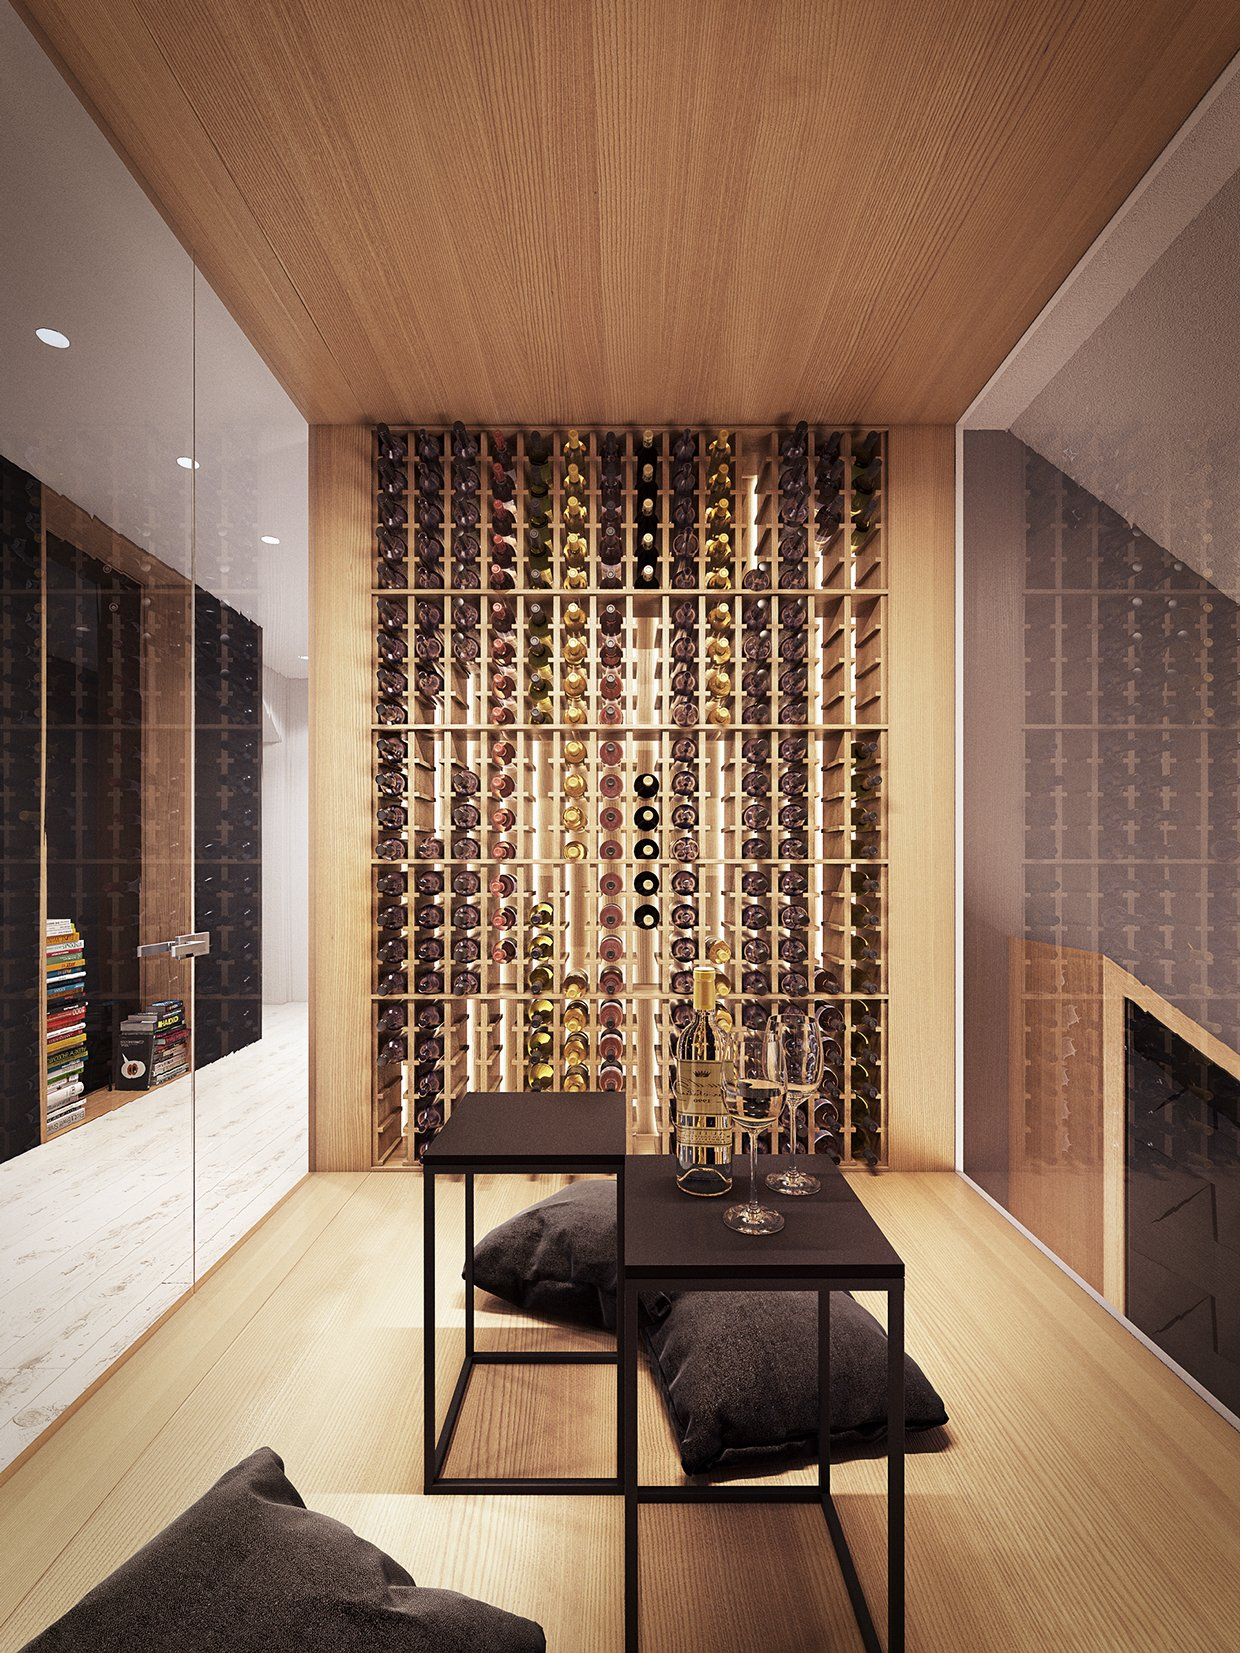 Architecture Maison Design Of Wine Cellar Design Interior Design Ideas